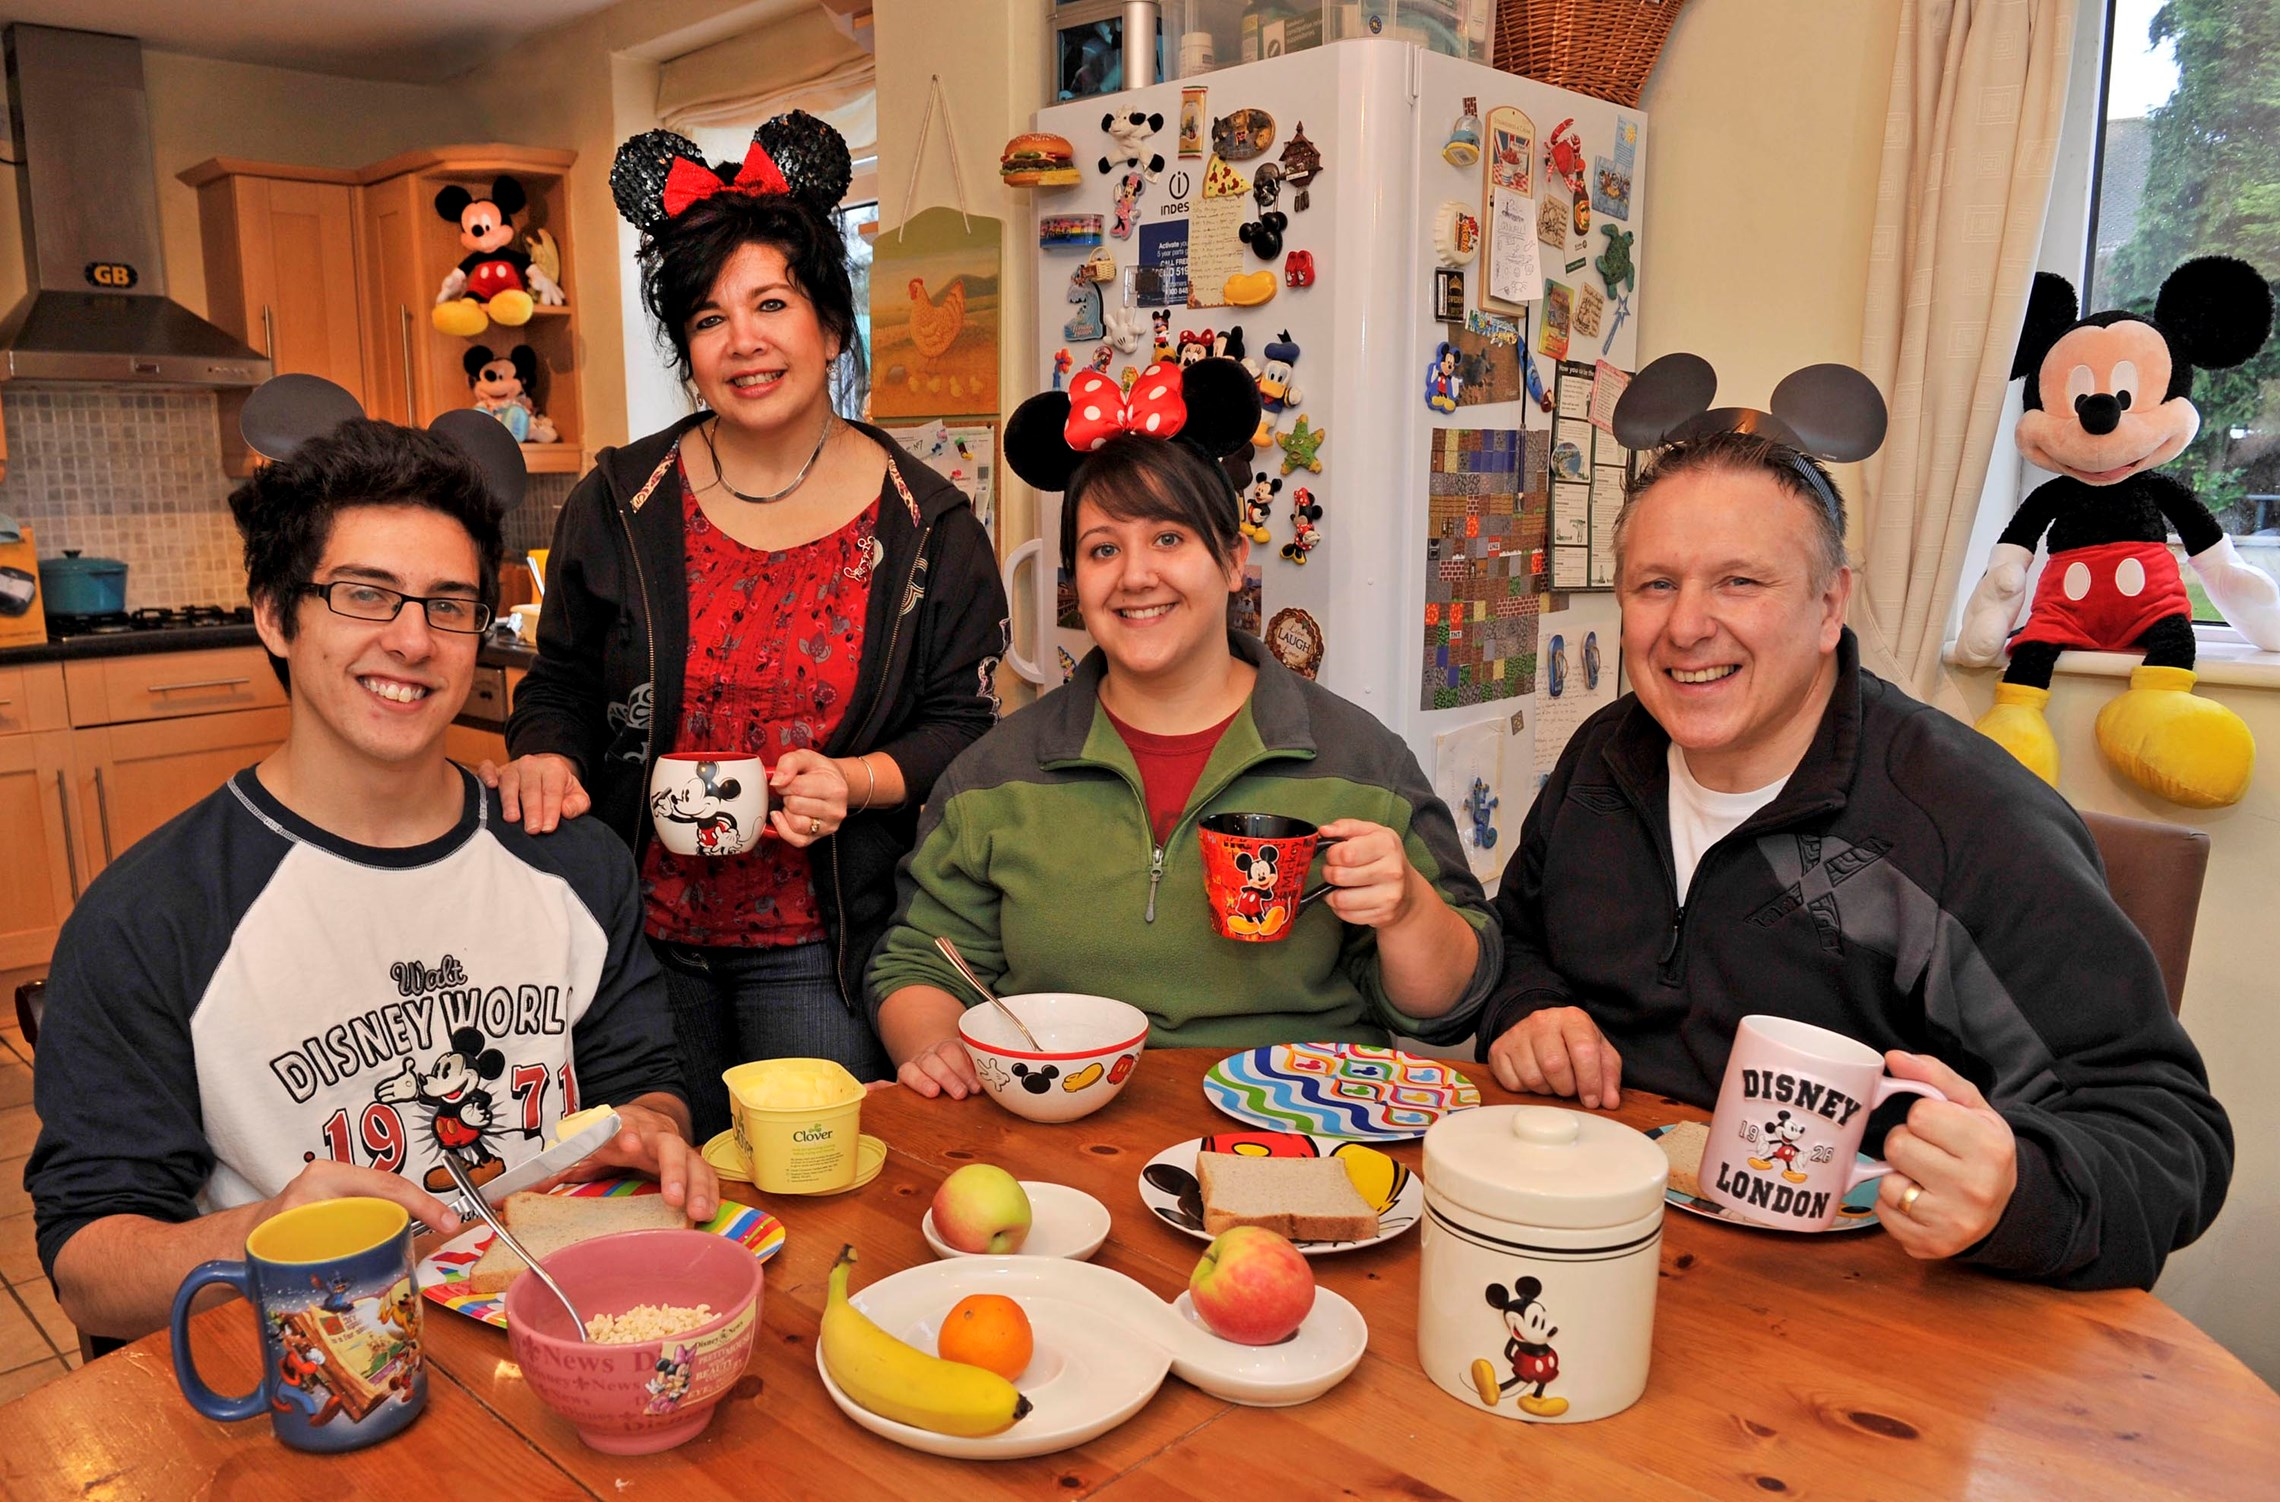 The world's first ever 'Walt Disney World Family'